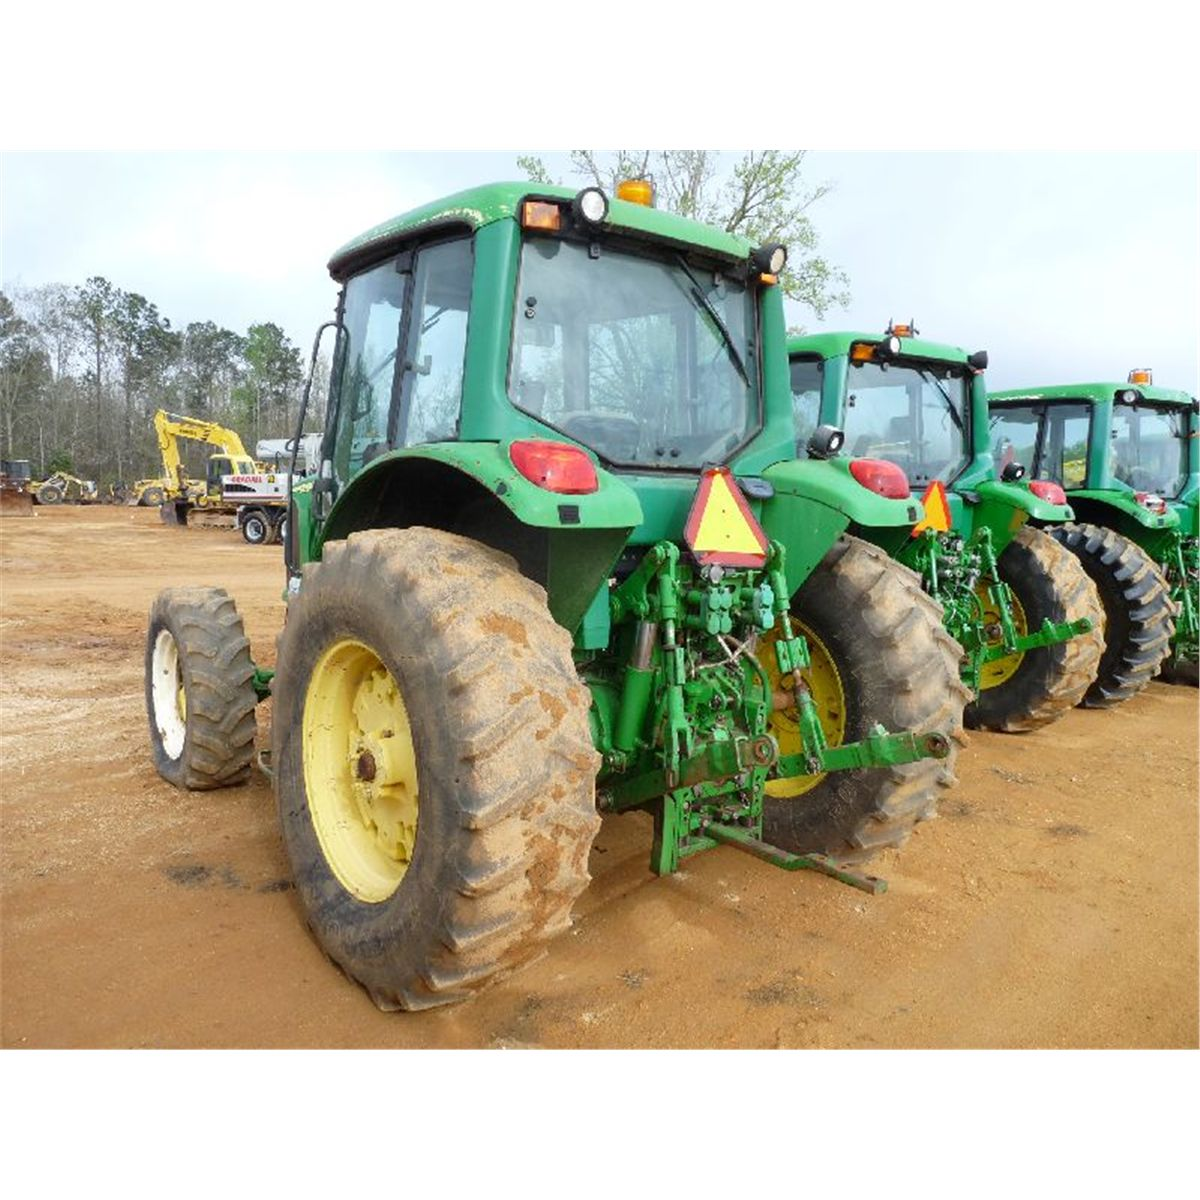 john deere 6420 4x4 farm tractor. Black Bedroom Furniture Sets. Home Design Ideas